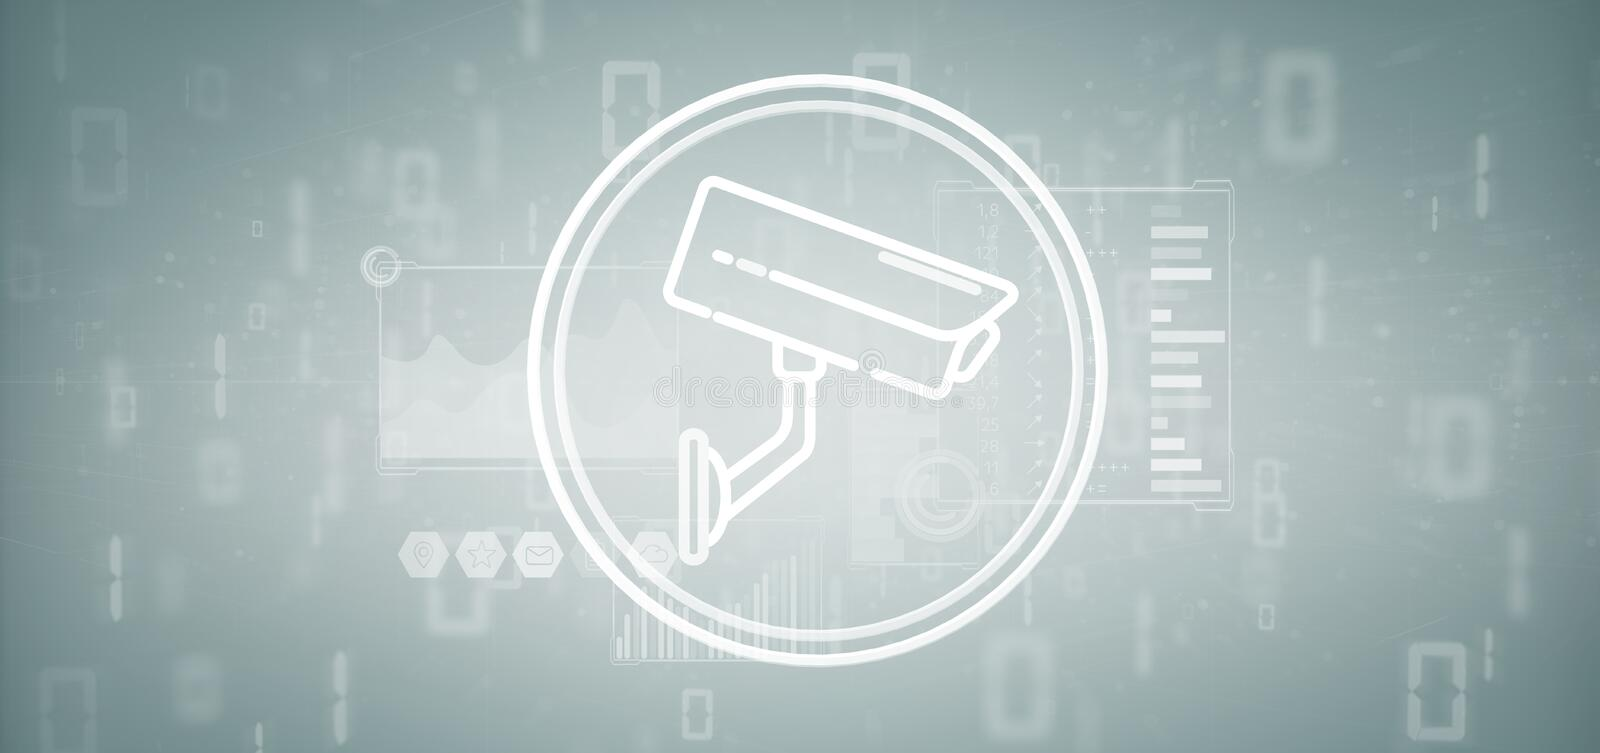 Security camera system icon and statistics data - 3d rendering vector illustration